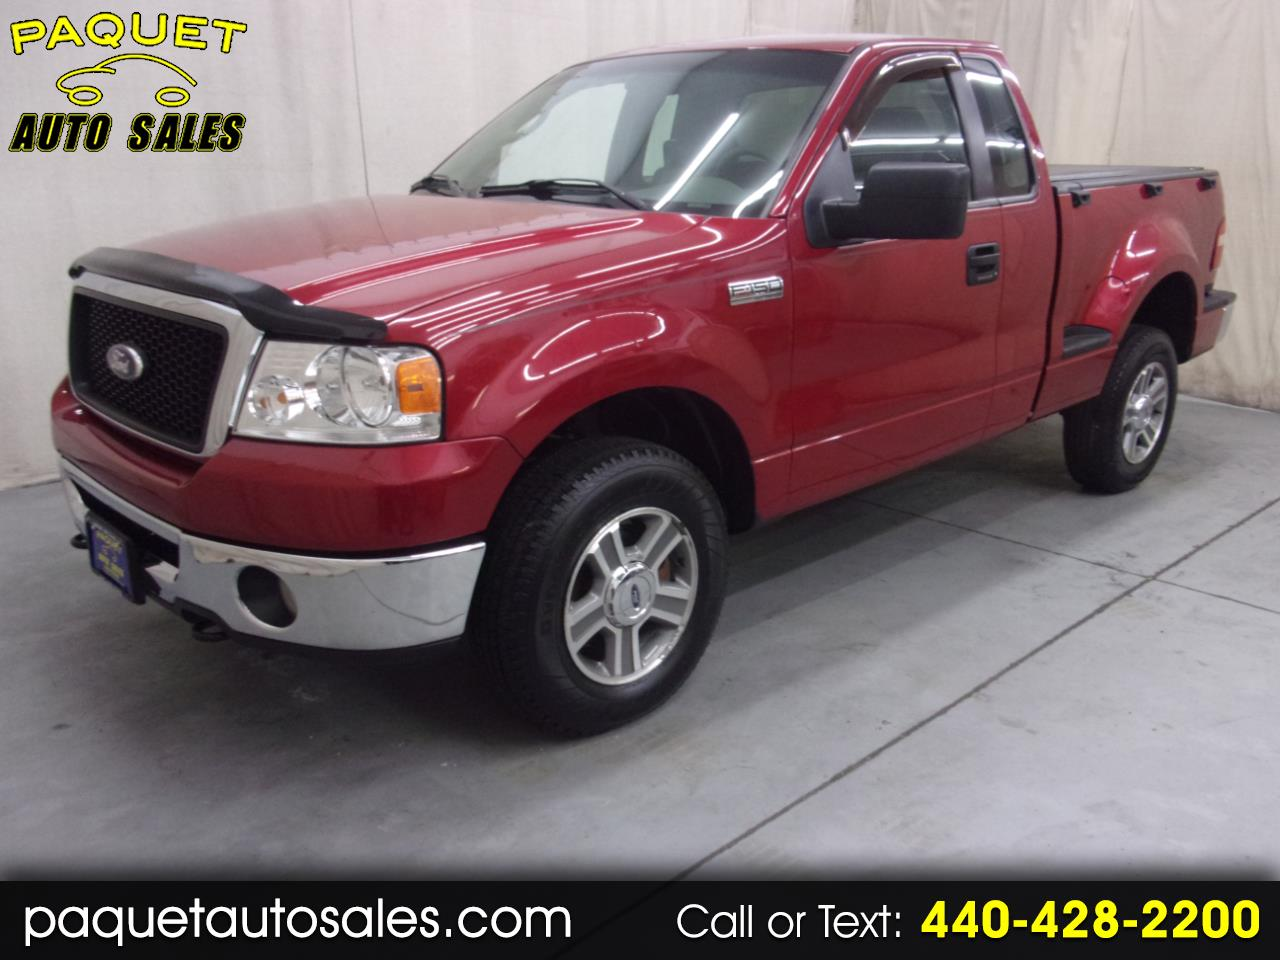 2008 Ford F-150 XLT 6.5-ft. Bed Flareside 4WD